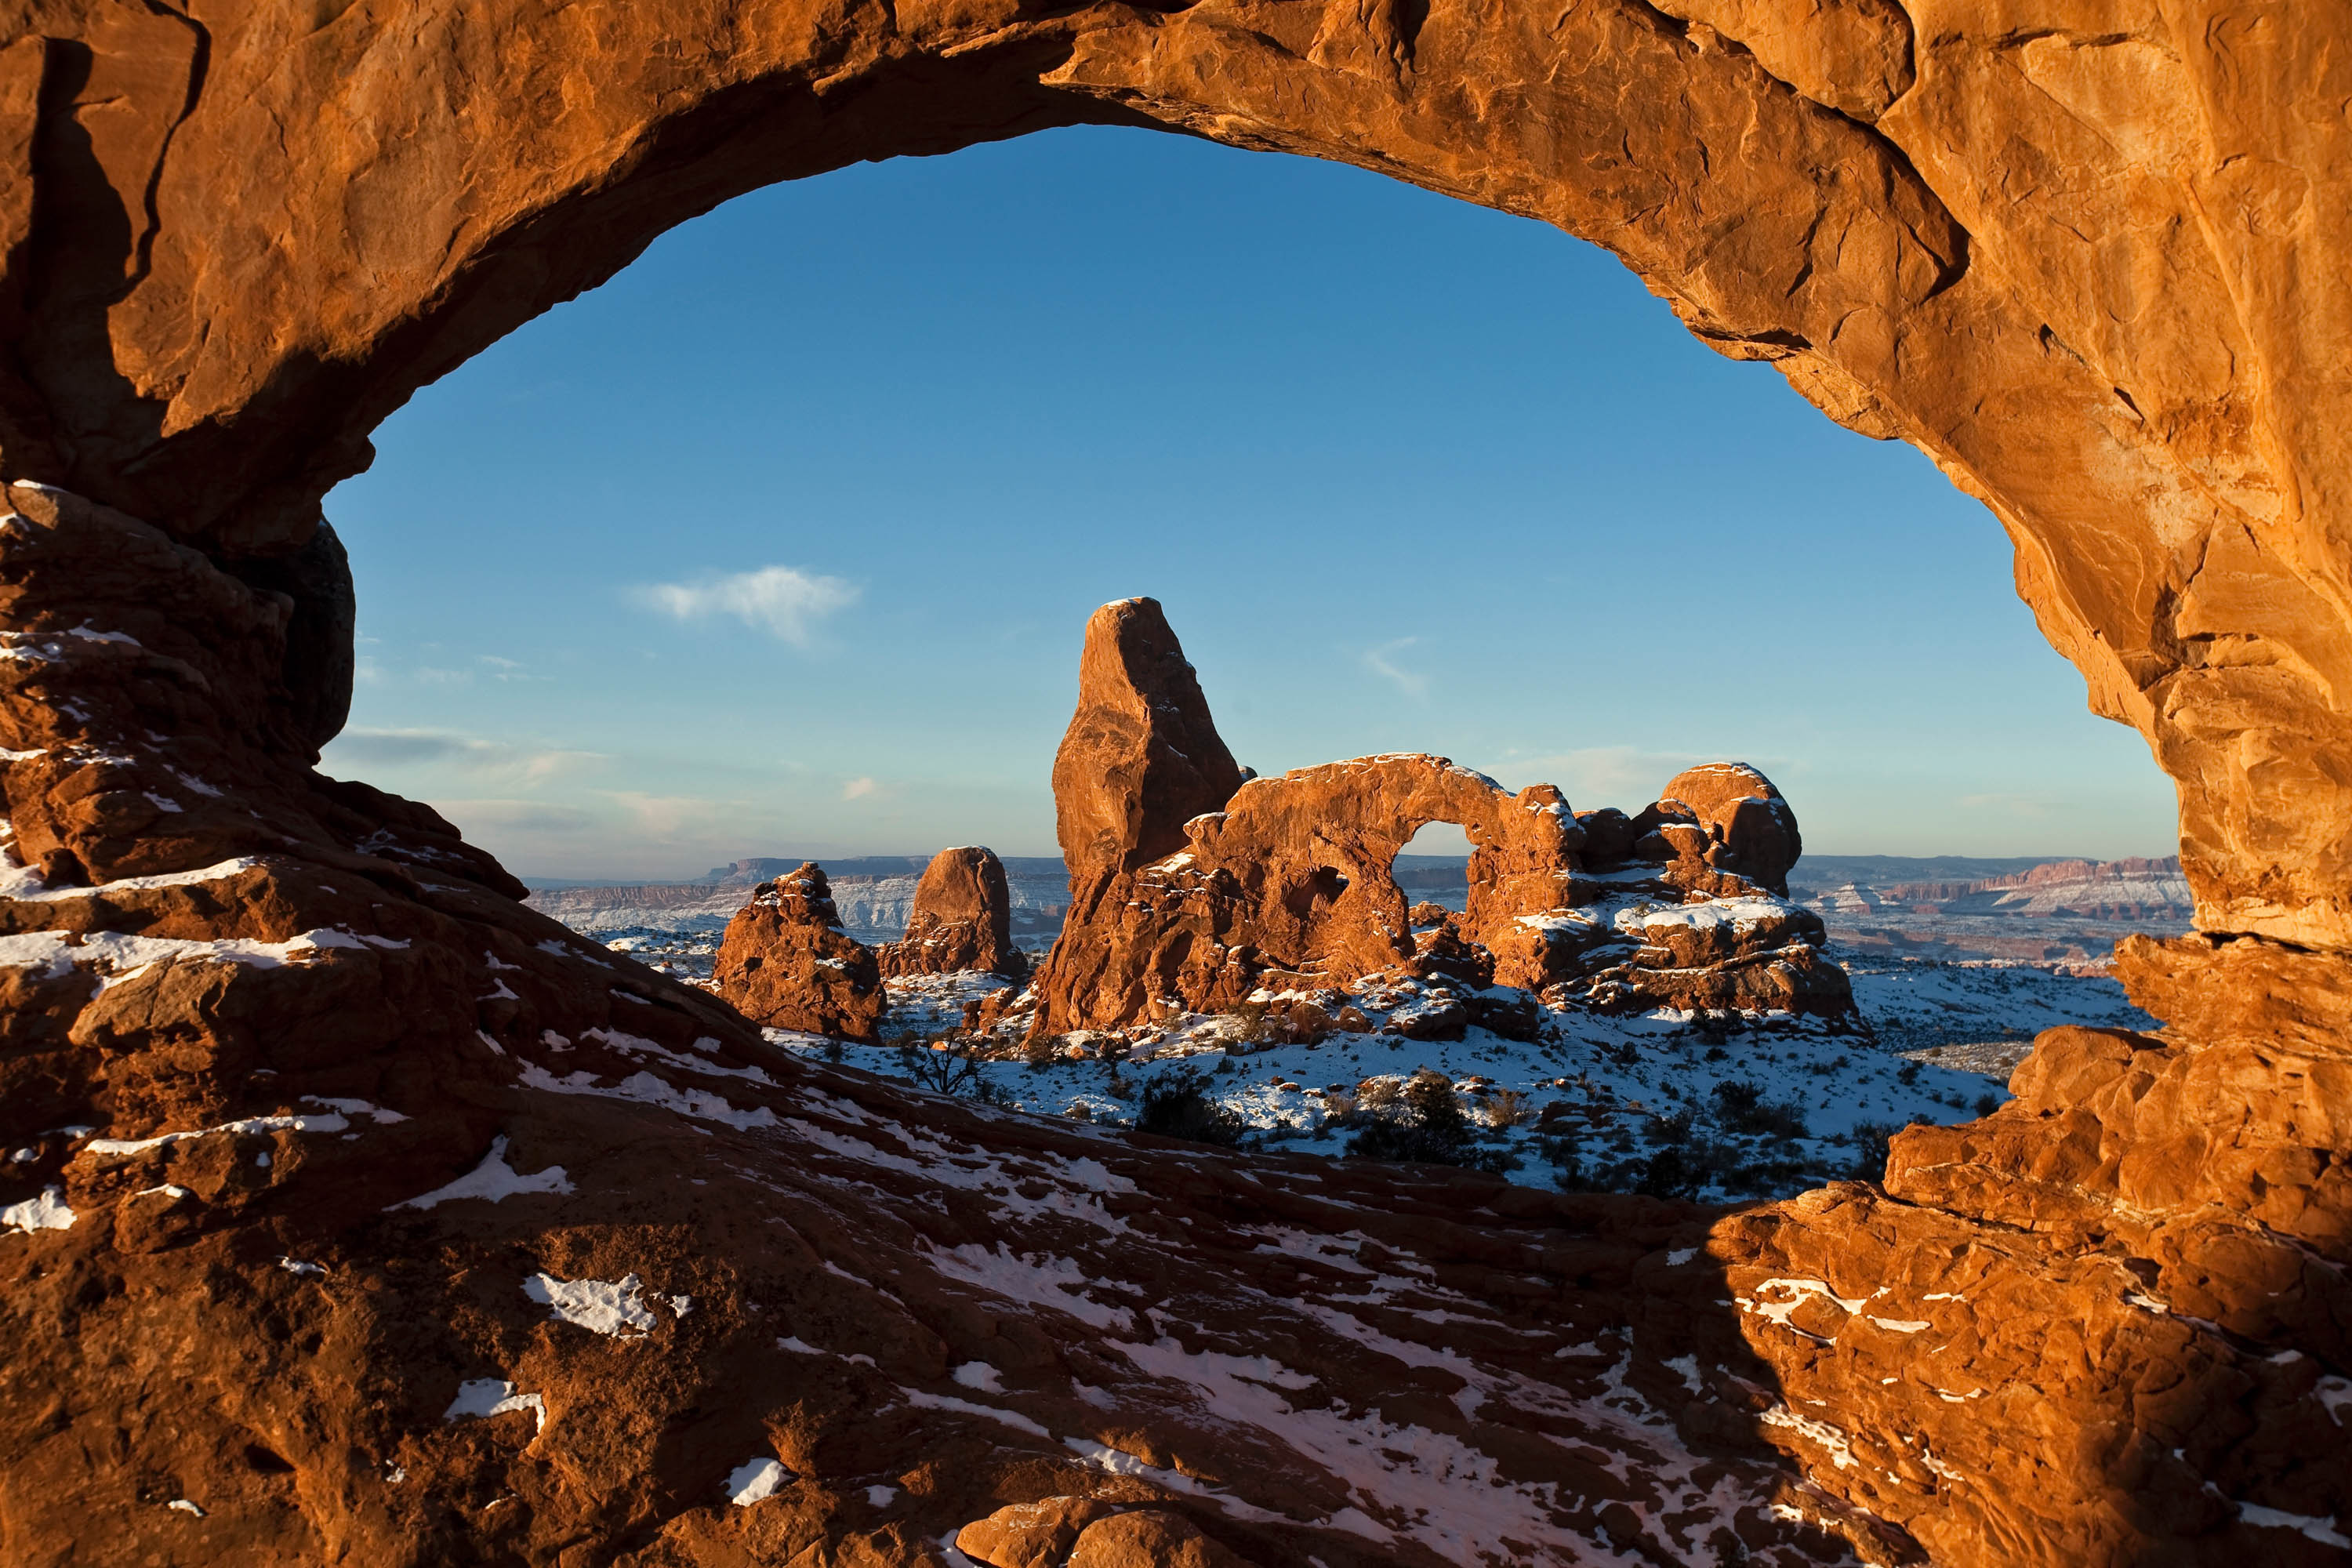 First Light on Turret Arch.&nbsp;<em>Jacob W. Frank (NPS)</em>